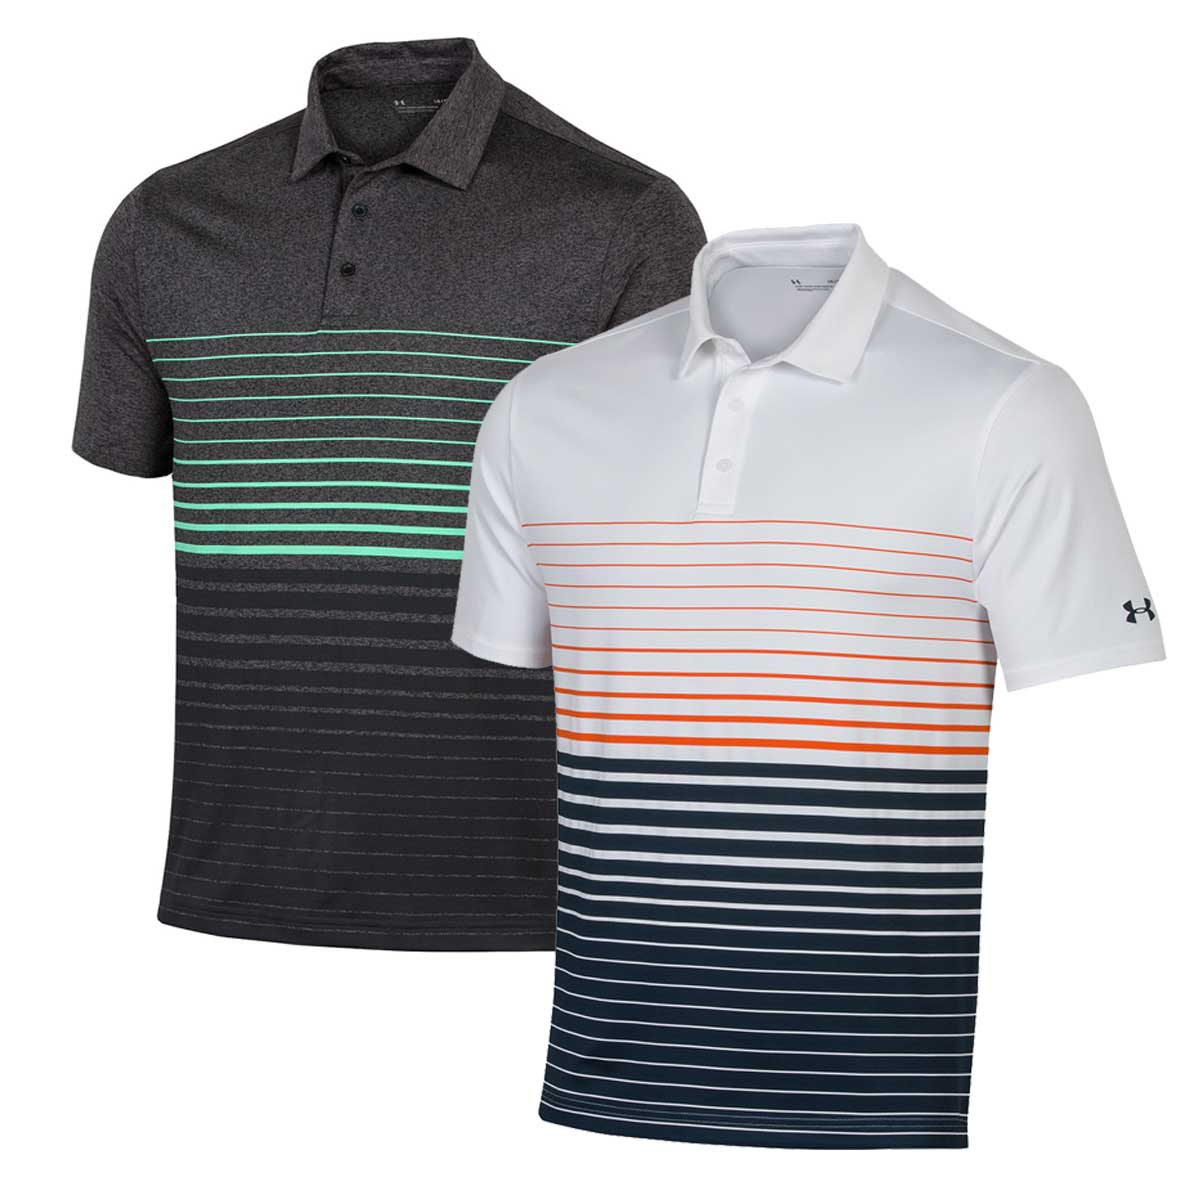 Under Armour Men's Playoff 2.0 Premier Polo